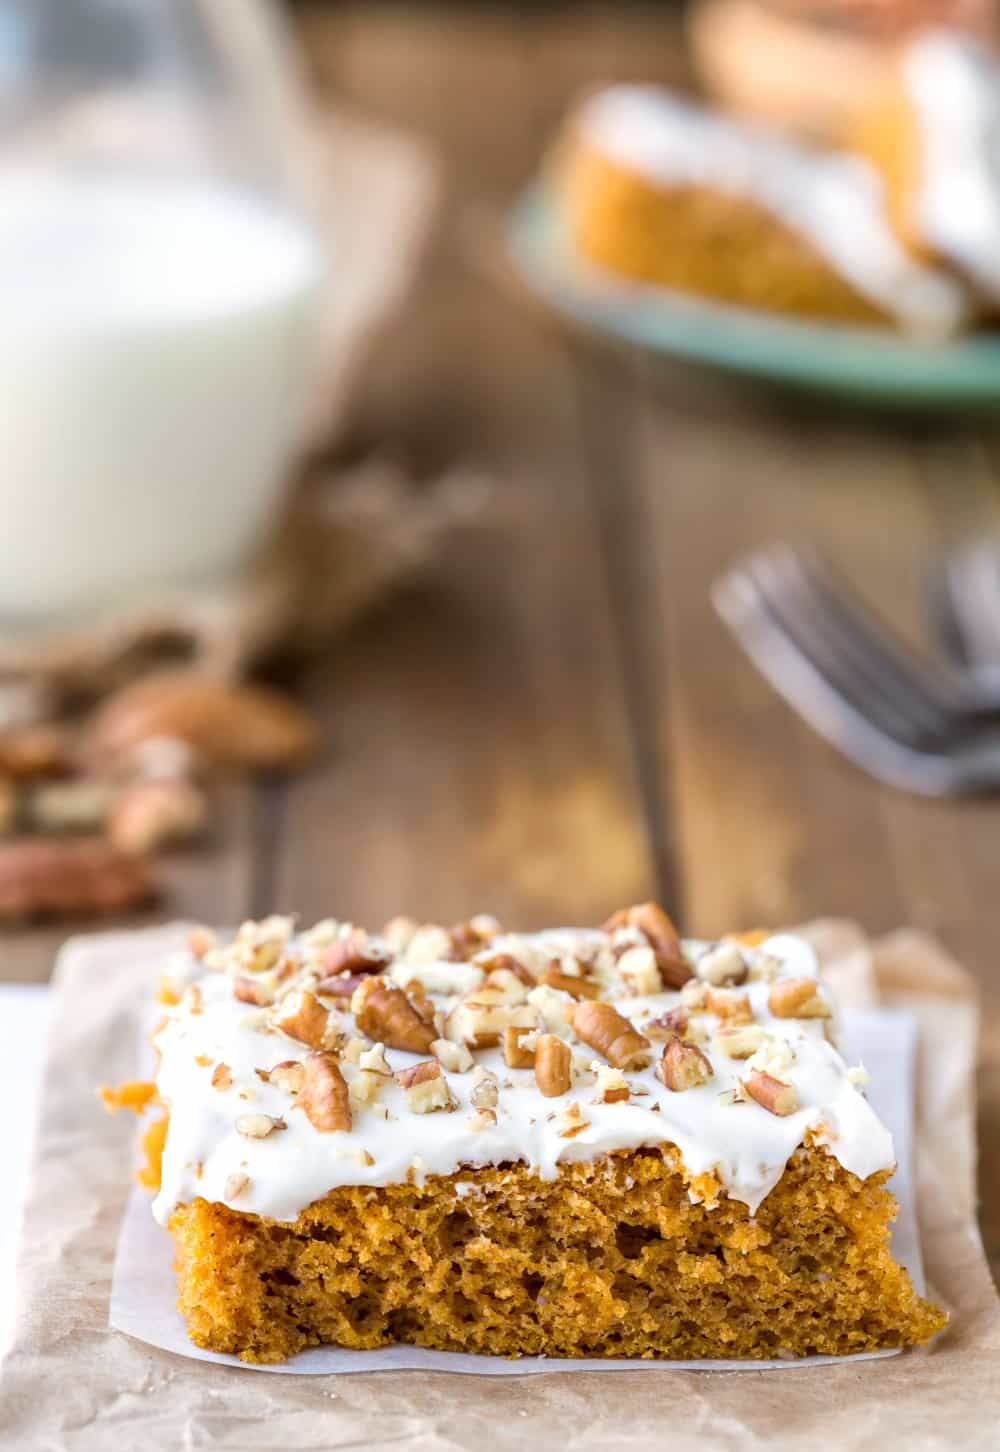 Pumpkin Bar topped with cream cheese and toasted pecans